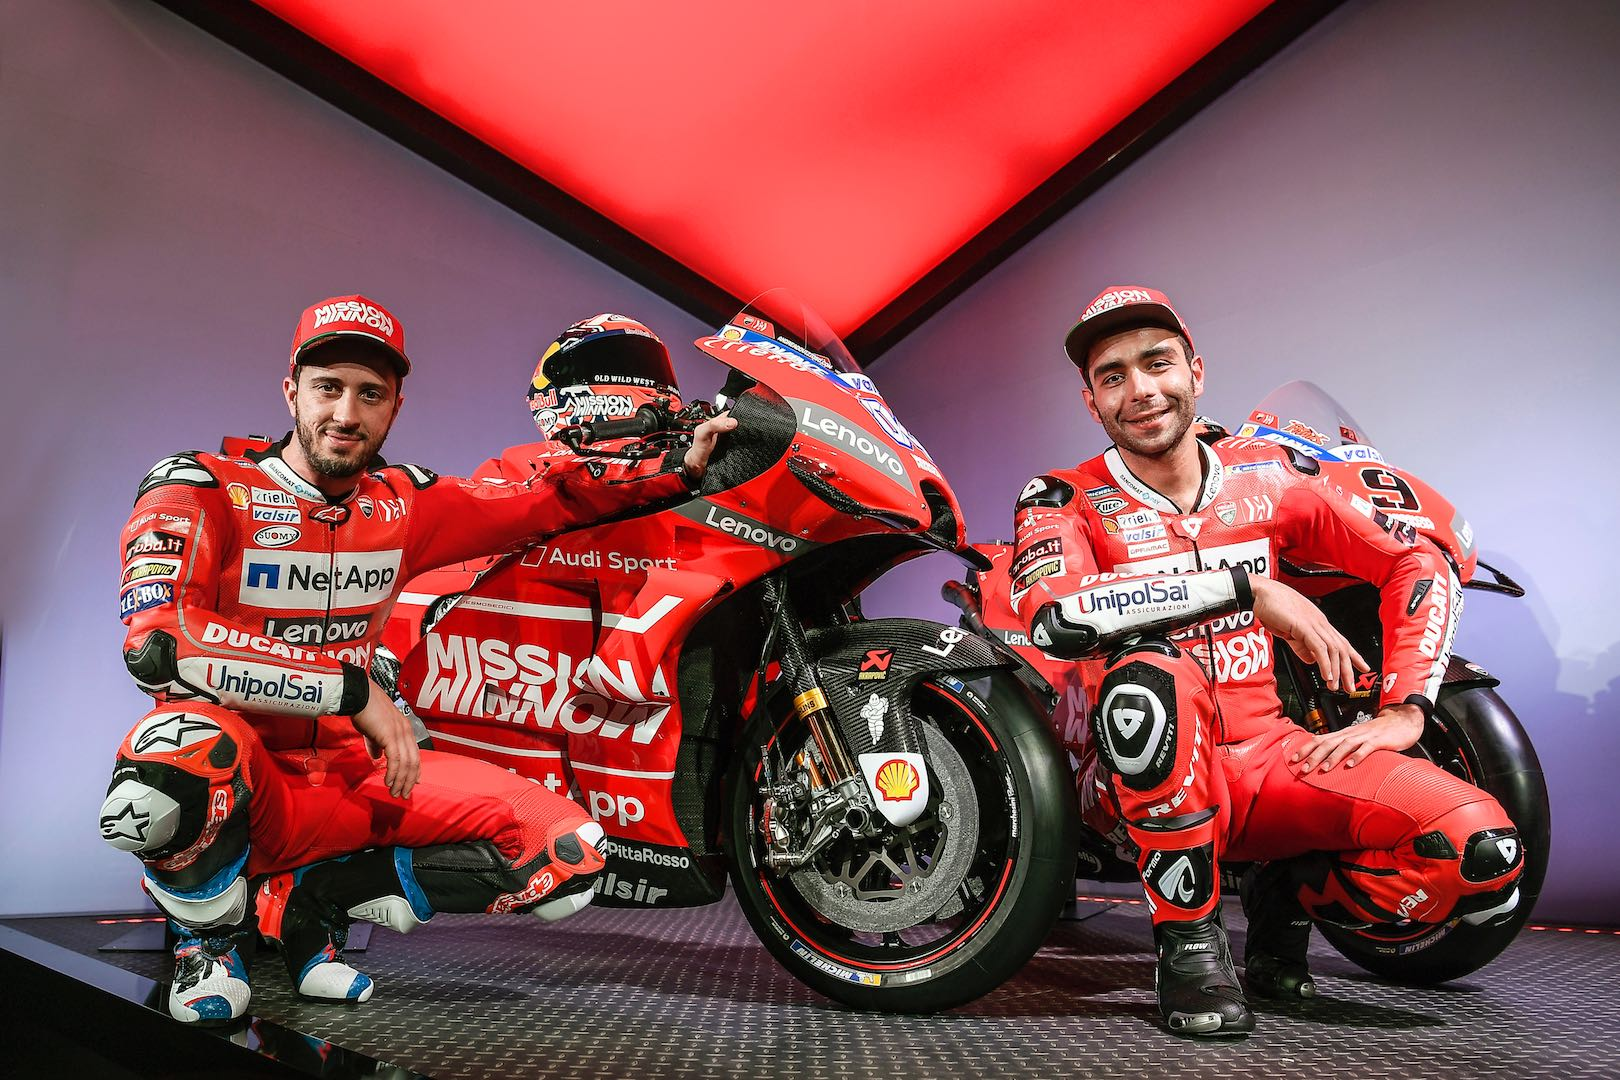 Mission Winnow Ducati MotoGP Team 2019 season